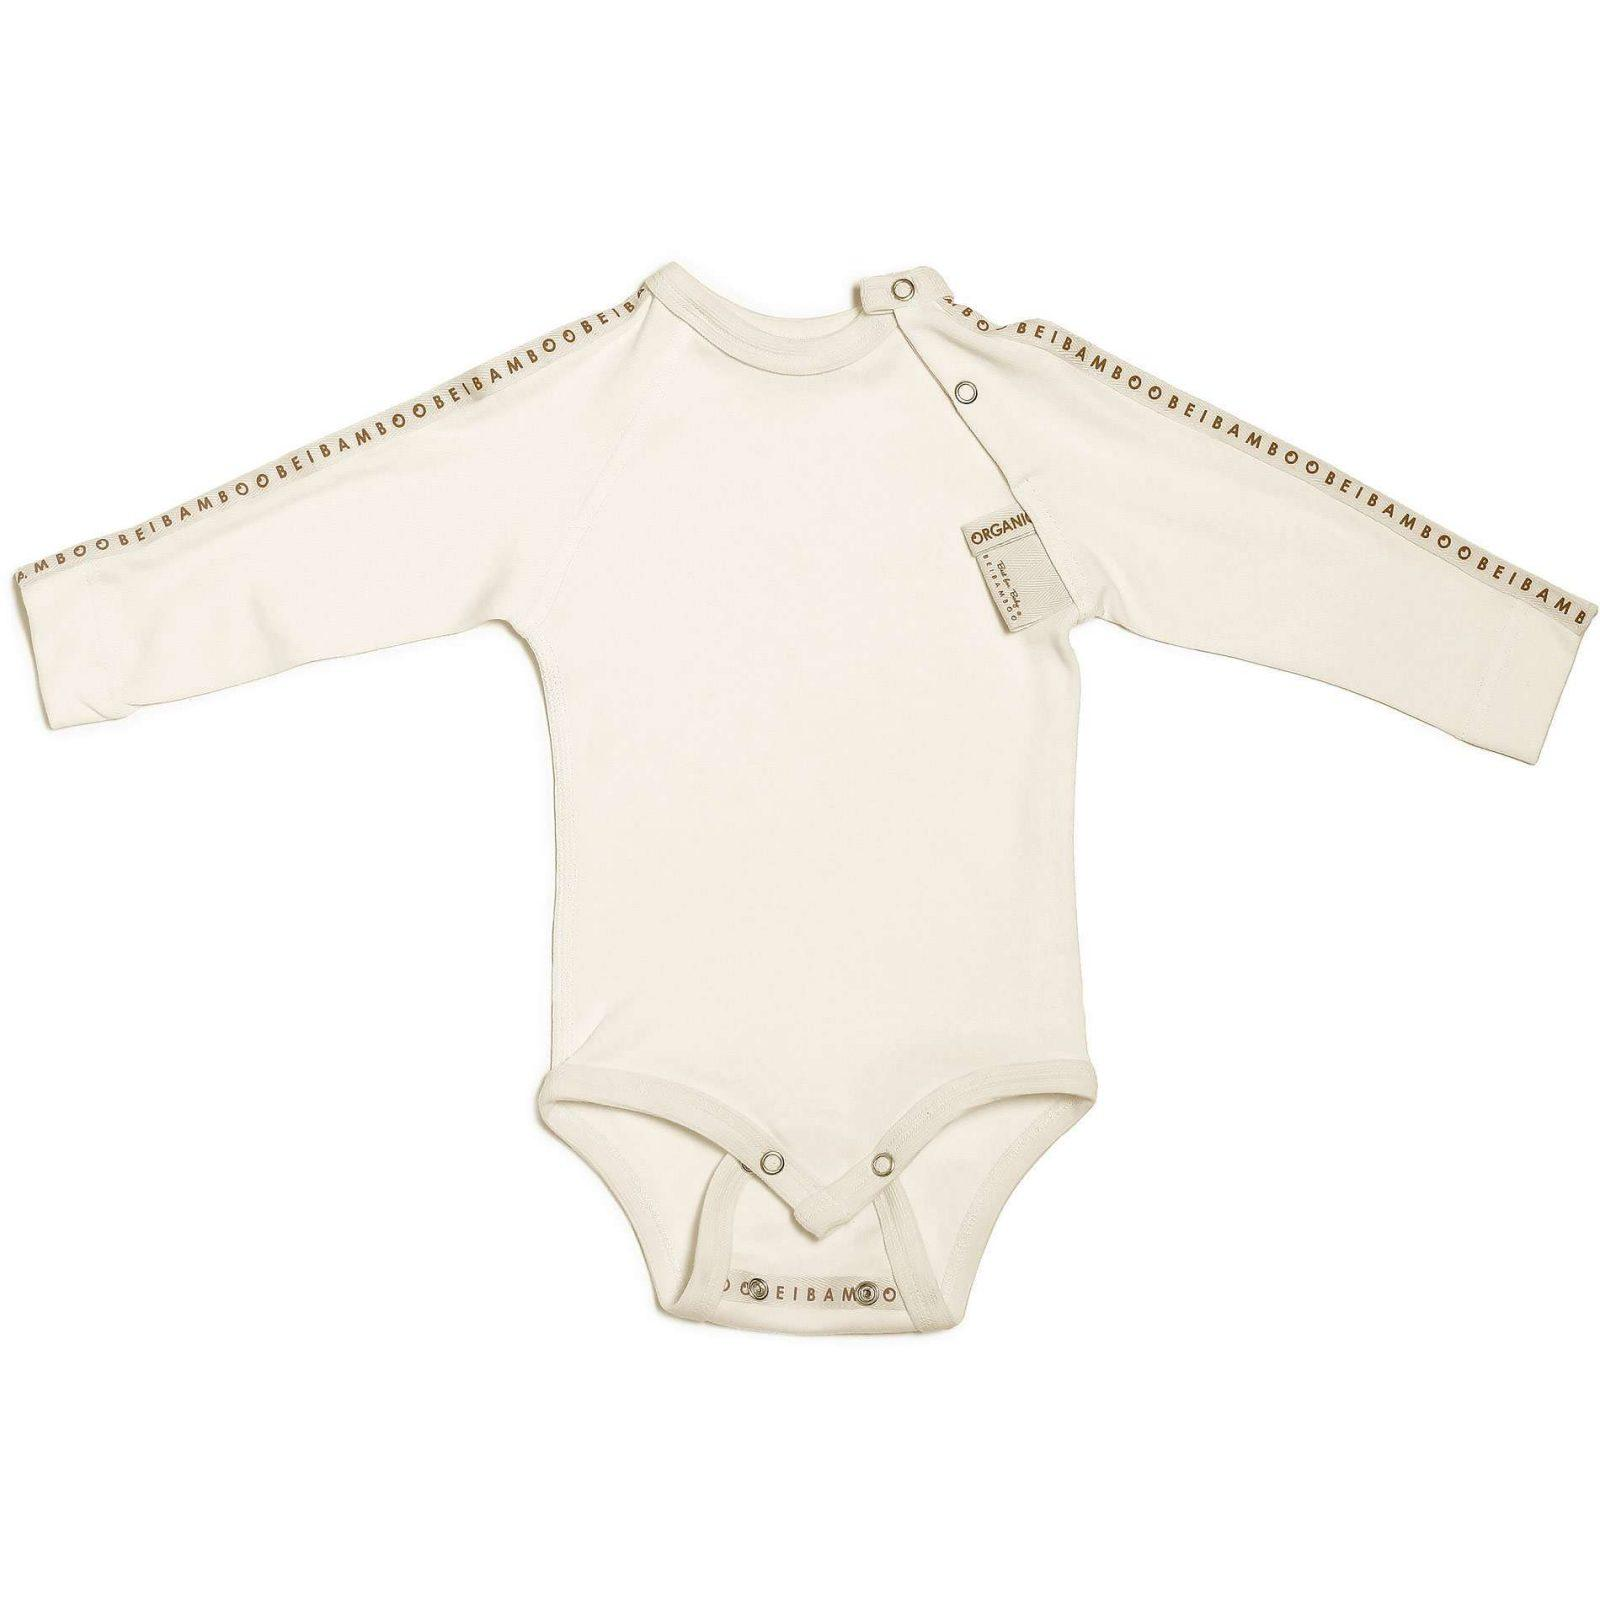 sweet Babyshower gift for new dad rompersuit white